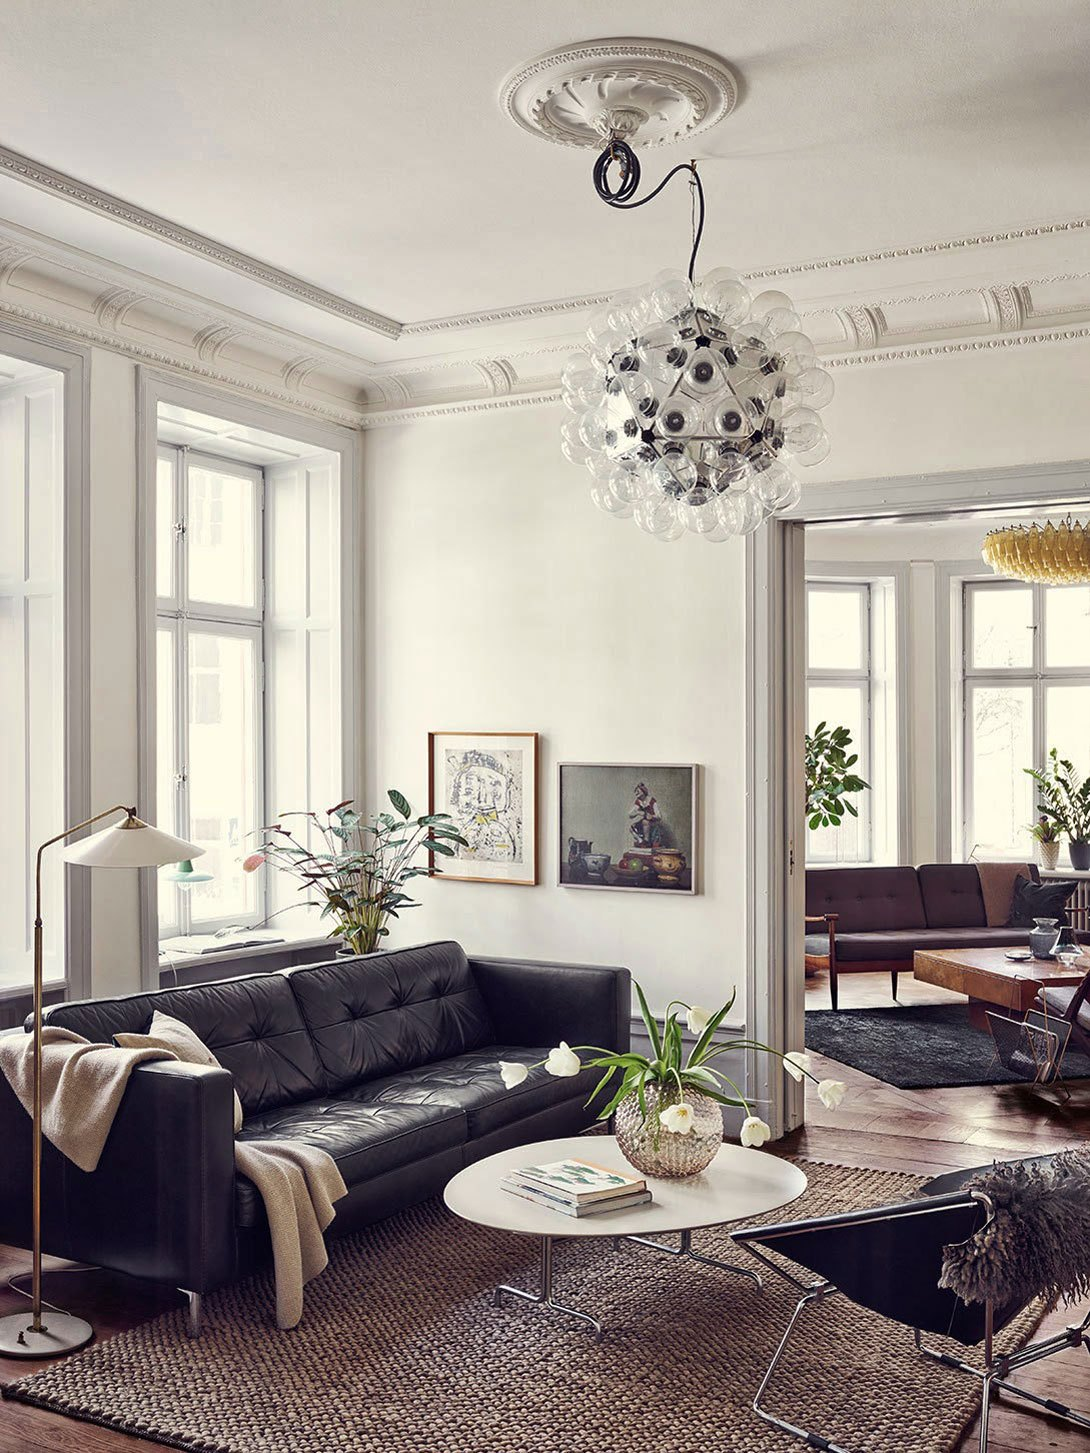 leather sofas Decorate Your Living Room With These Leather Sofas! Decorate Your Living Room With These Leather Sofas 6